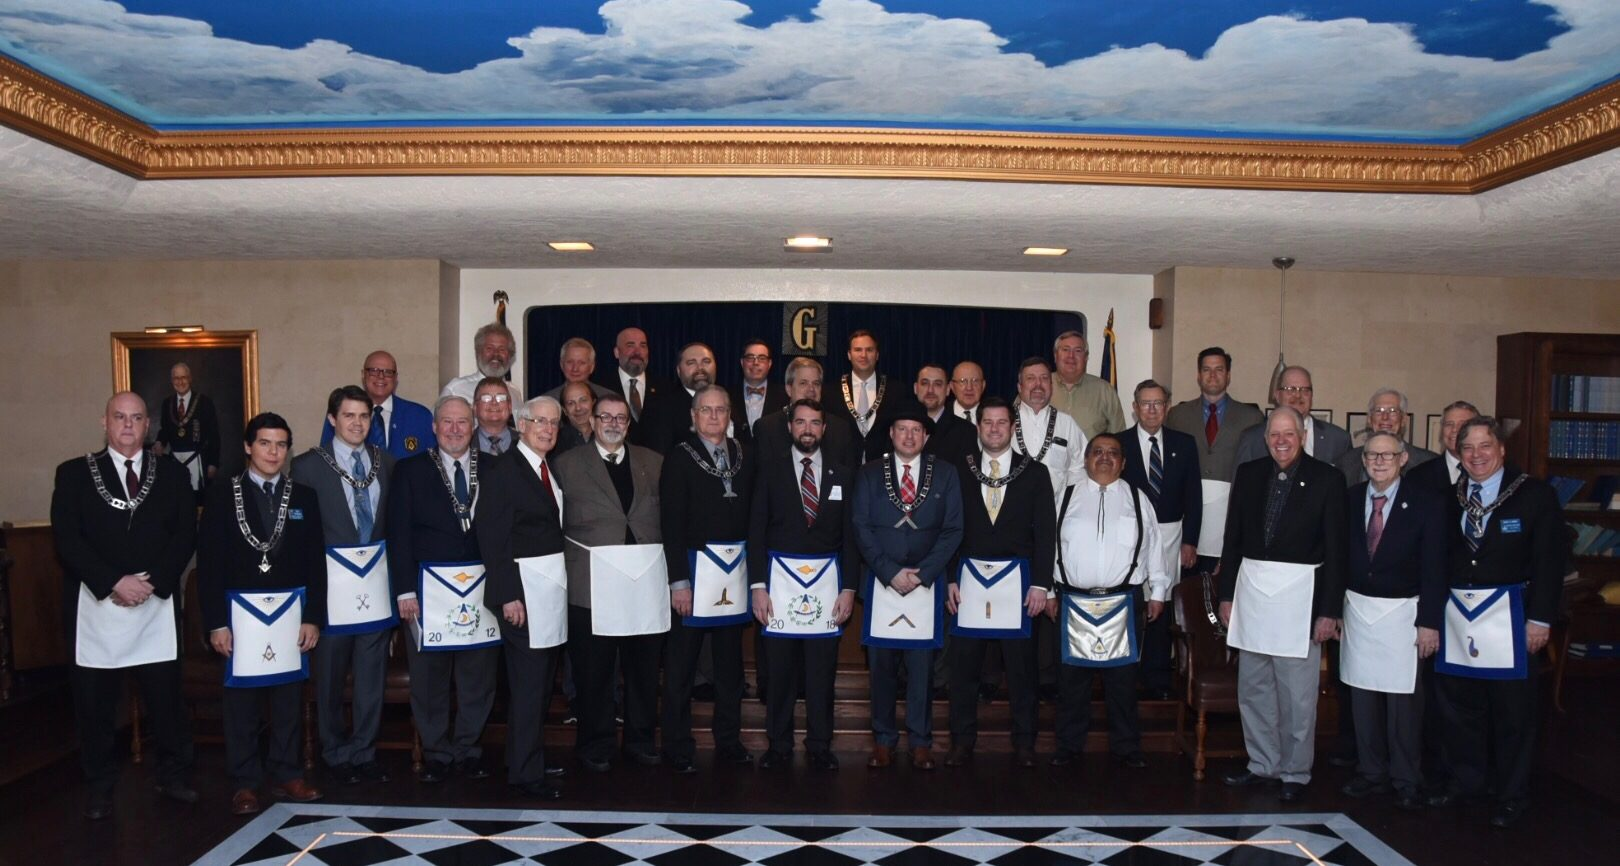 DDGM Wahlquist's Official Visit to Hillcrest Lodge